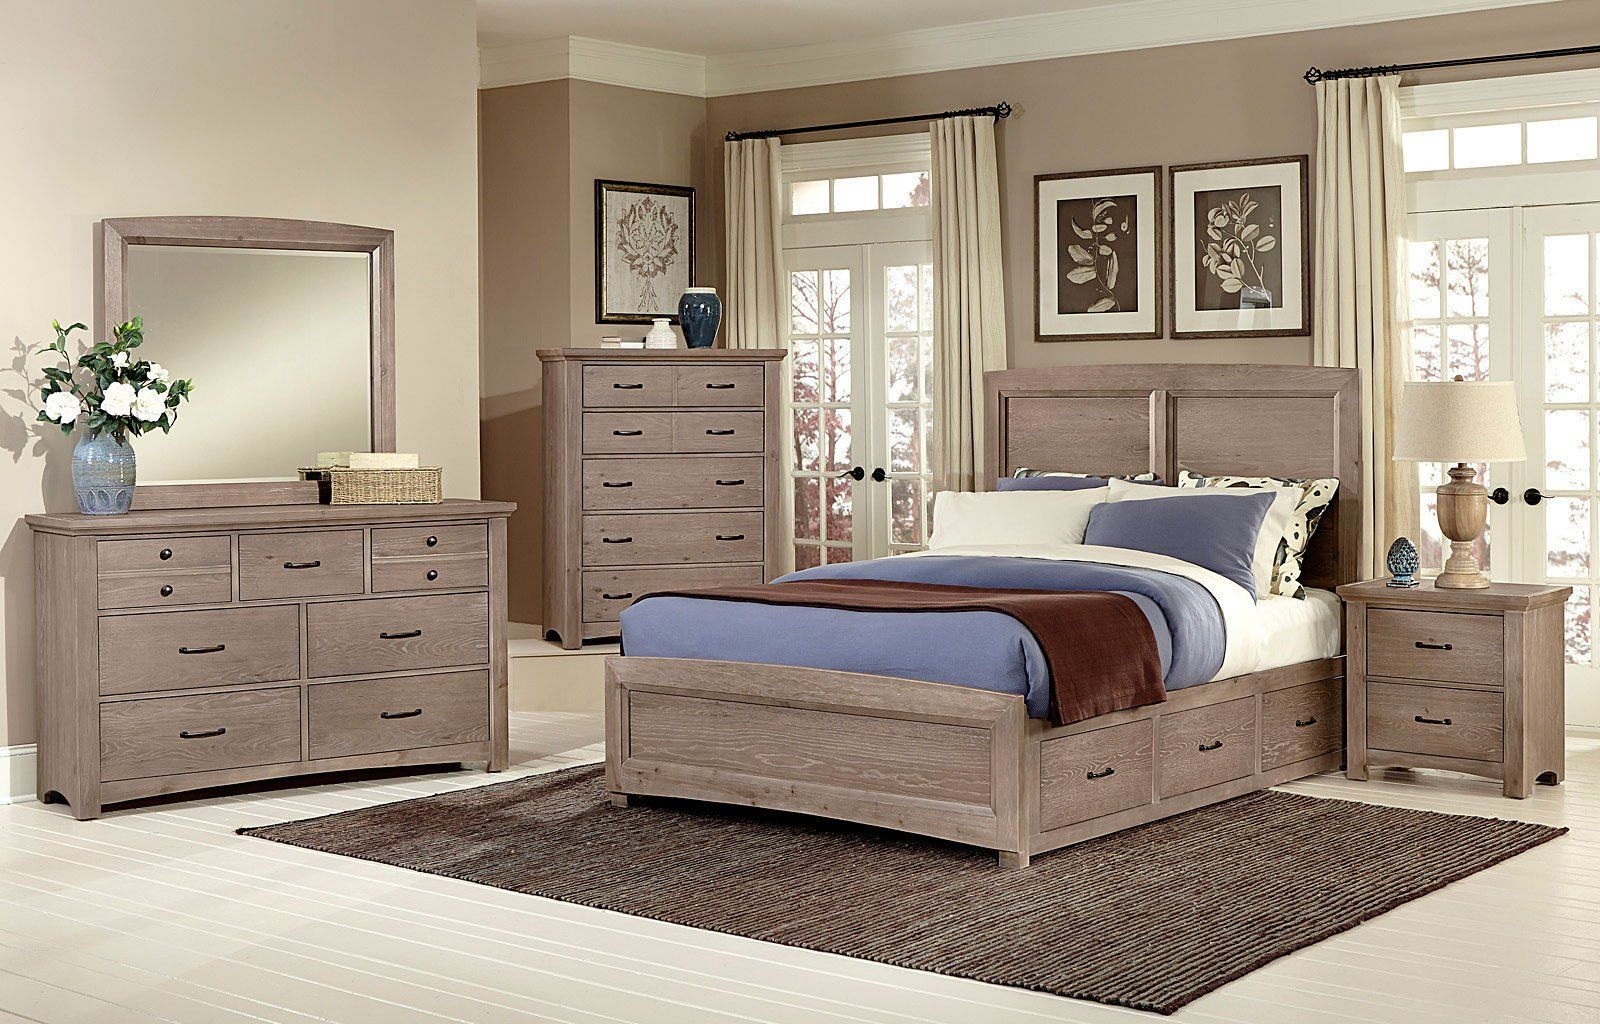 transitions bedroom set w two storages driftwood oak